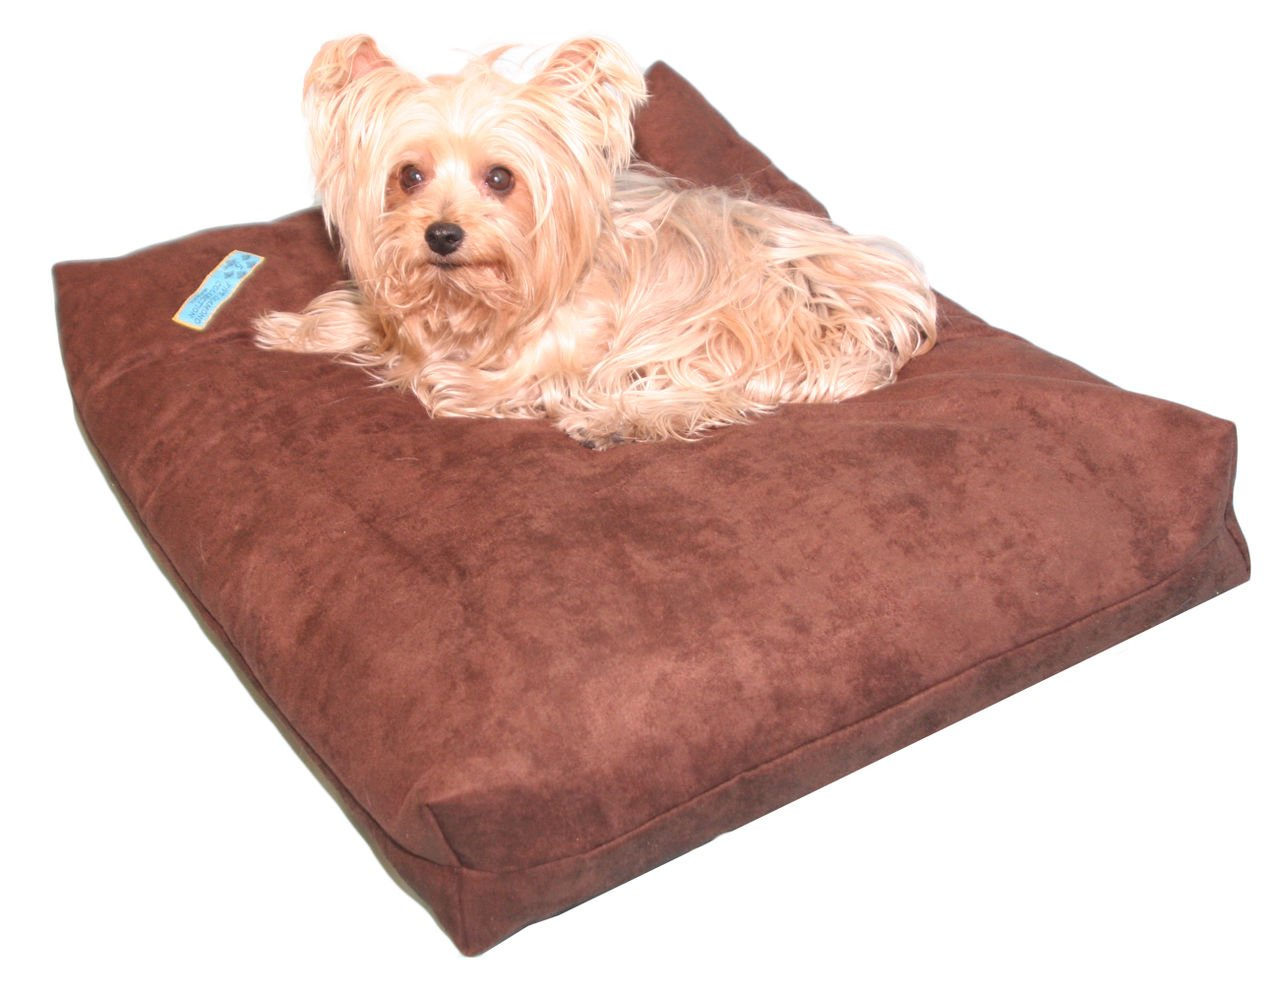 Five Diamond Collection Shredded Memory Foam Orthopedic Dog Bed with Removable Washable Cover and Water Proof Inner Fabric, Made in USA, for Small, Medium, Large, and Extra Large Breed Dogs